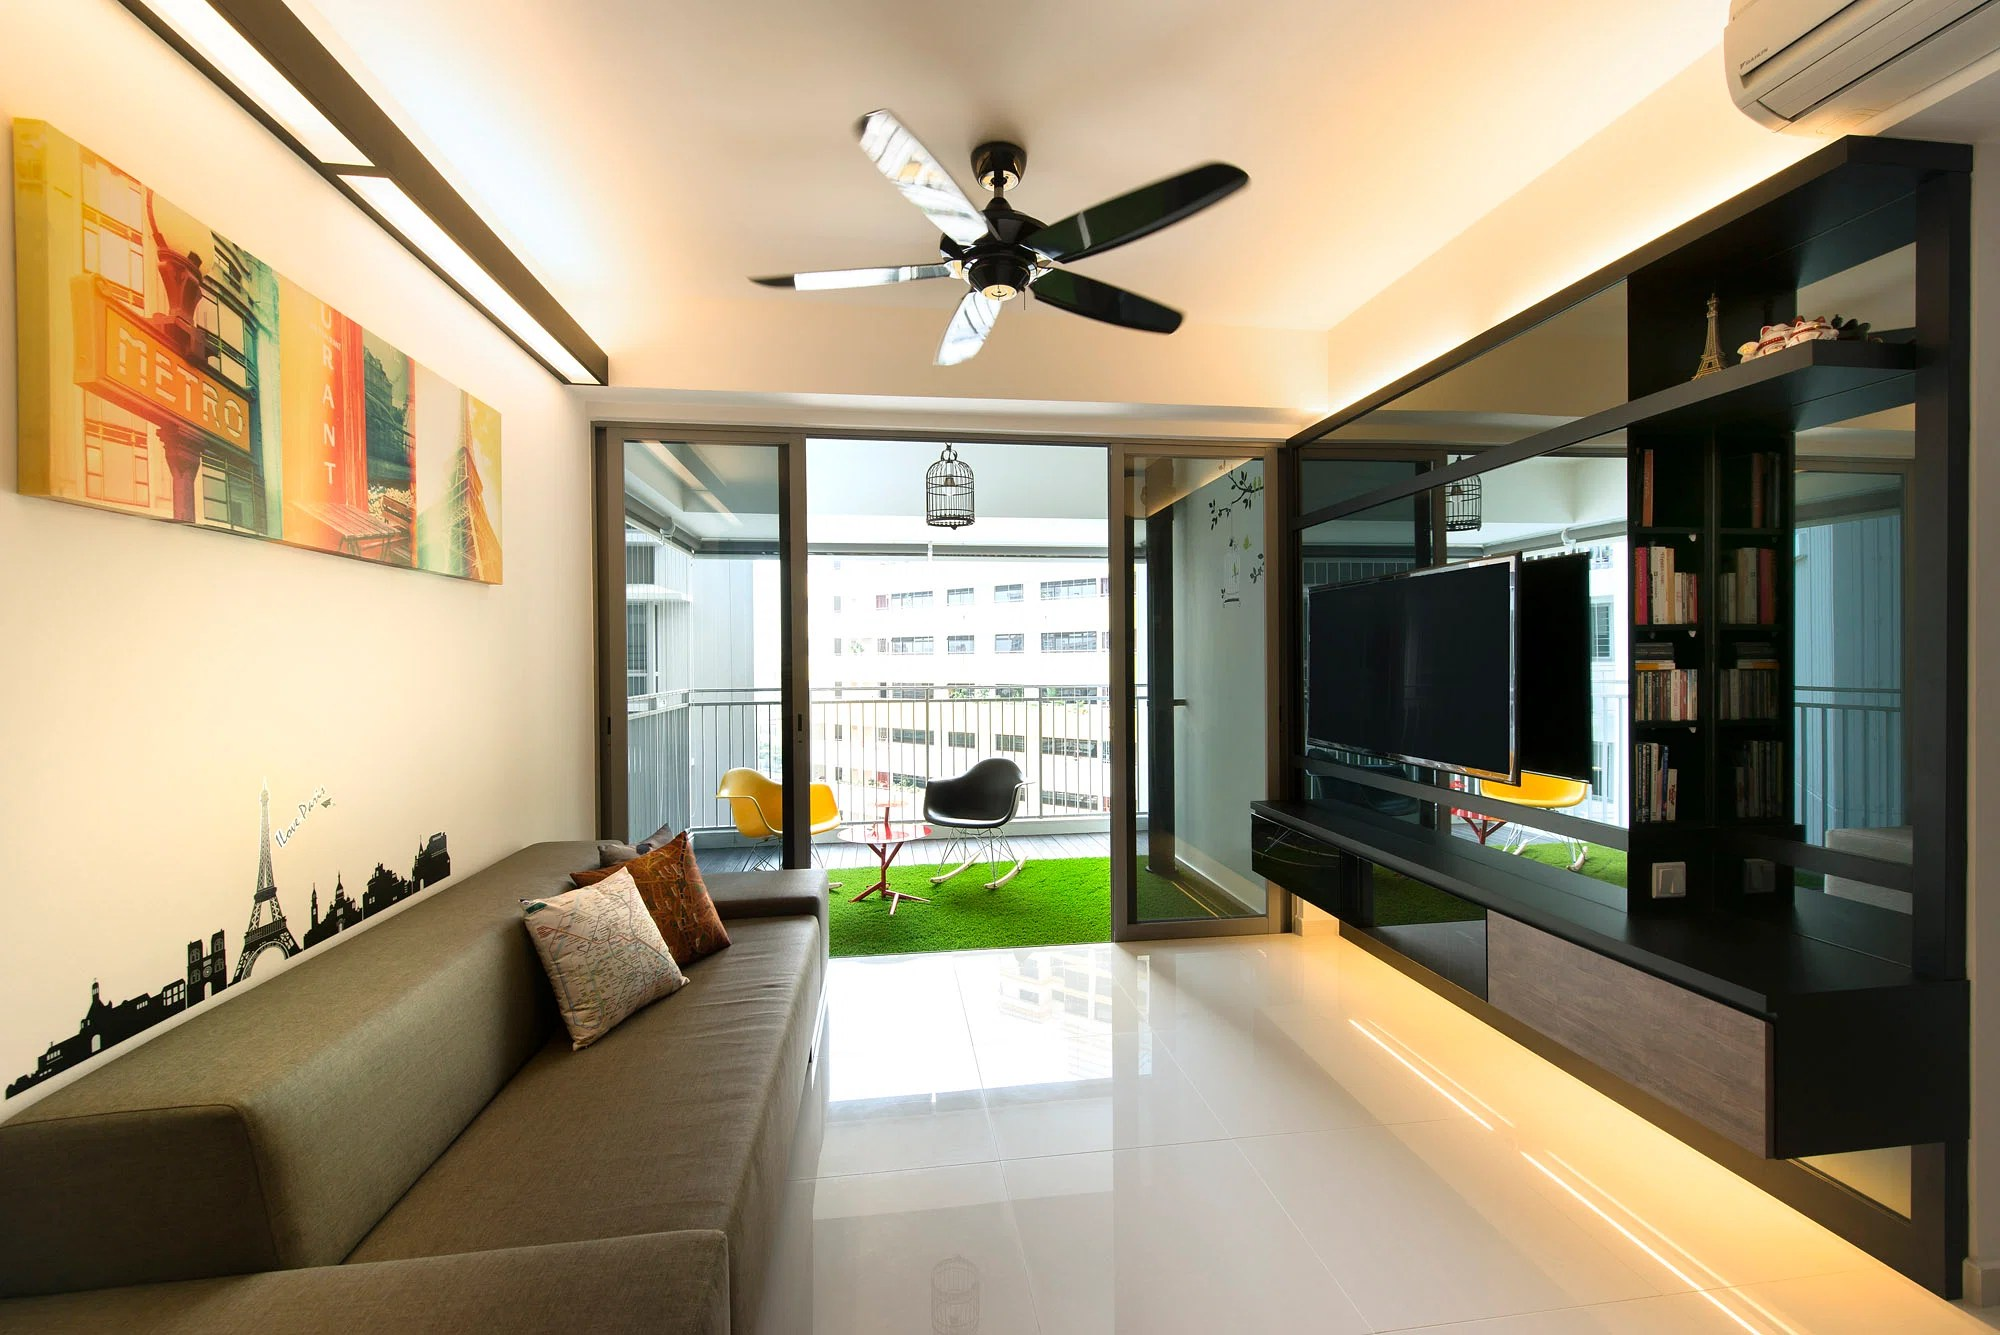 Interior Design Of The House Hdb Home And Decor Singapore